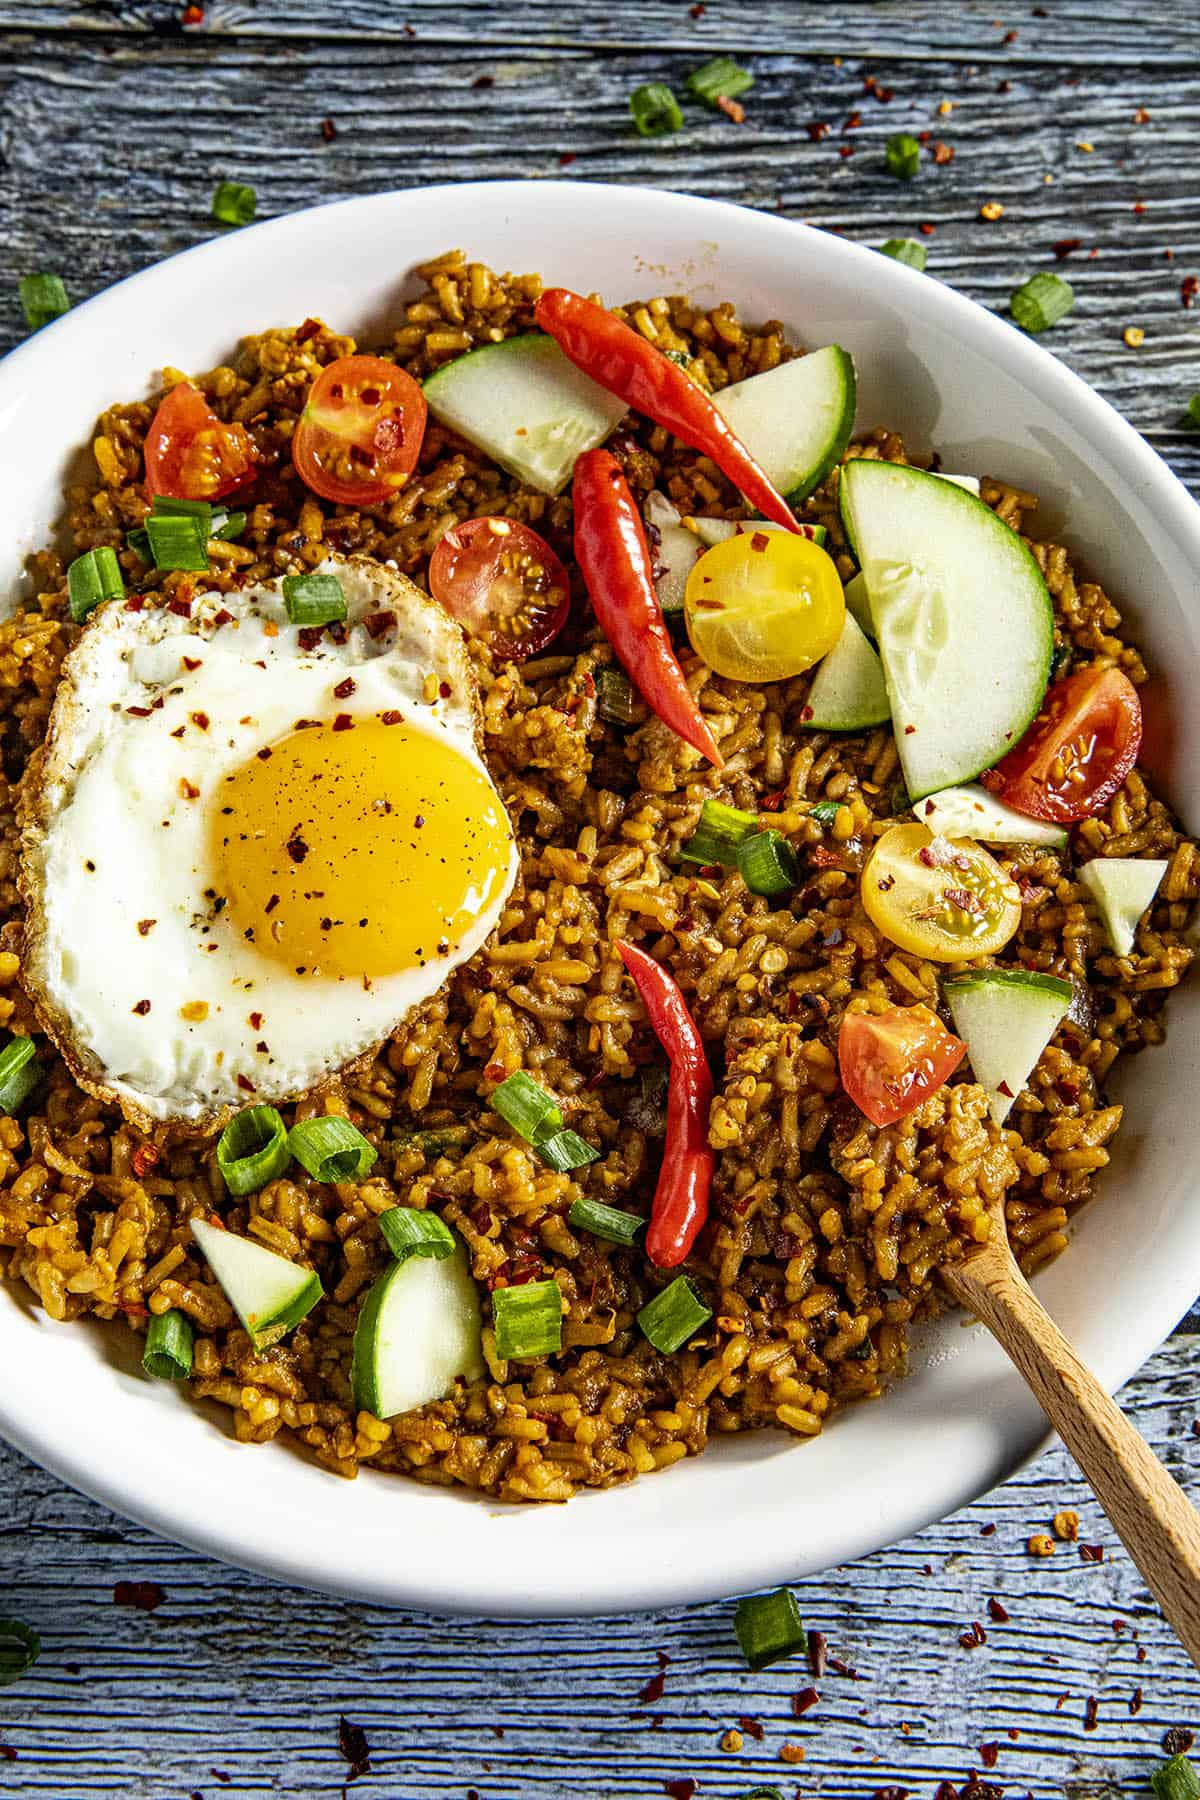 Nasi Goreng - Indonesian Fried Rice in a bowl with a fried egg on top